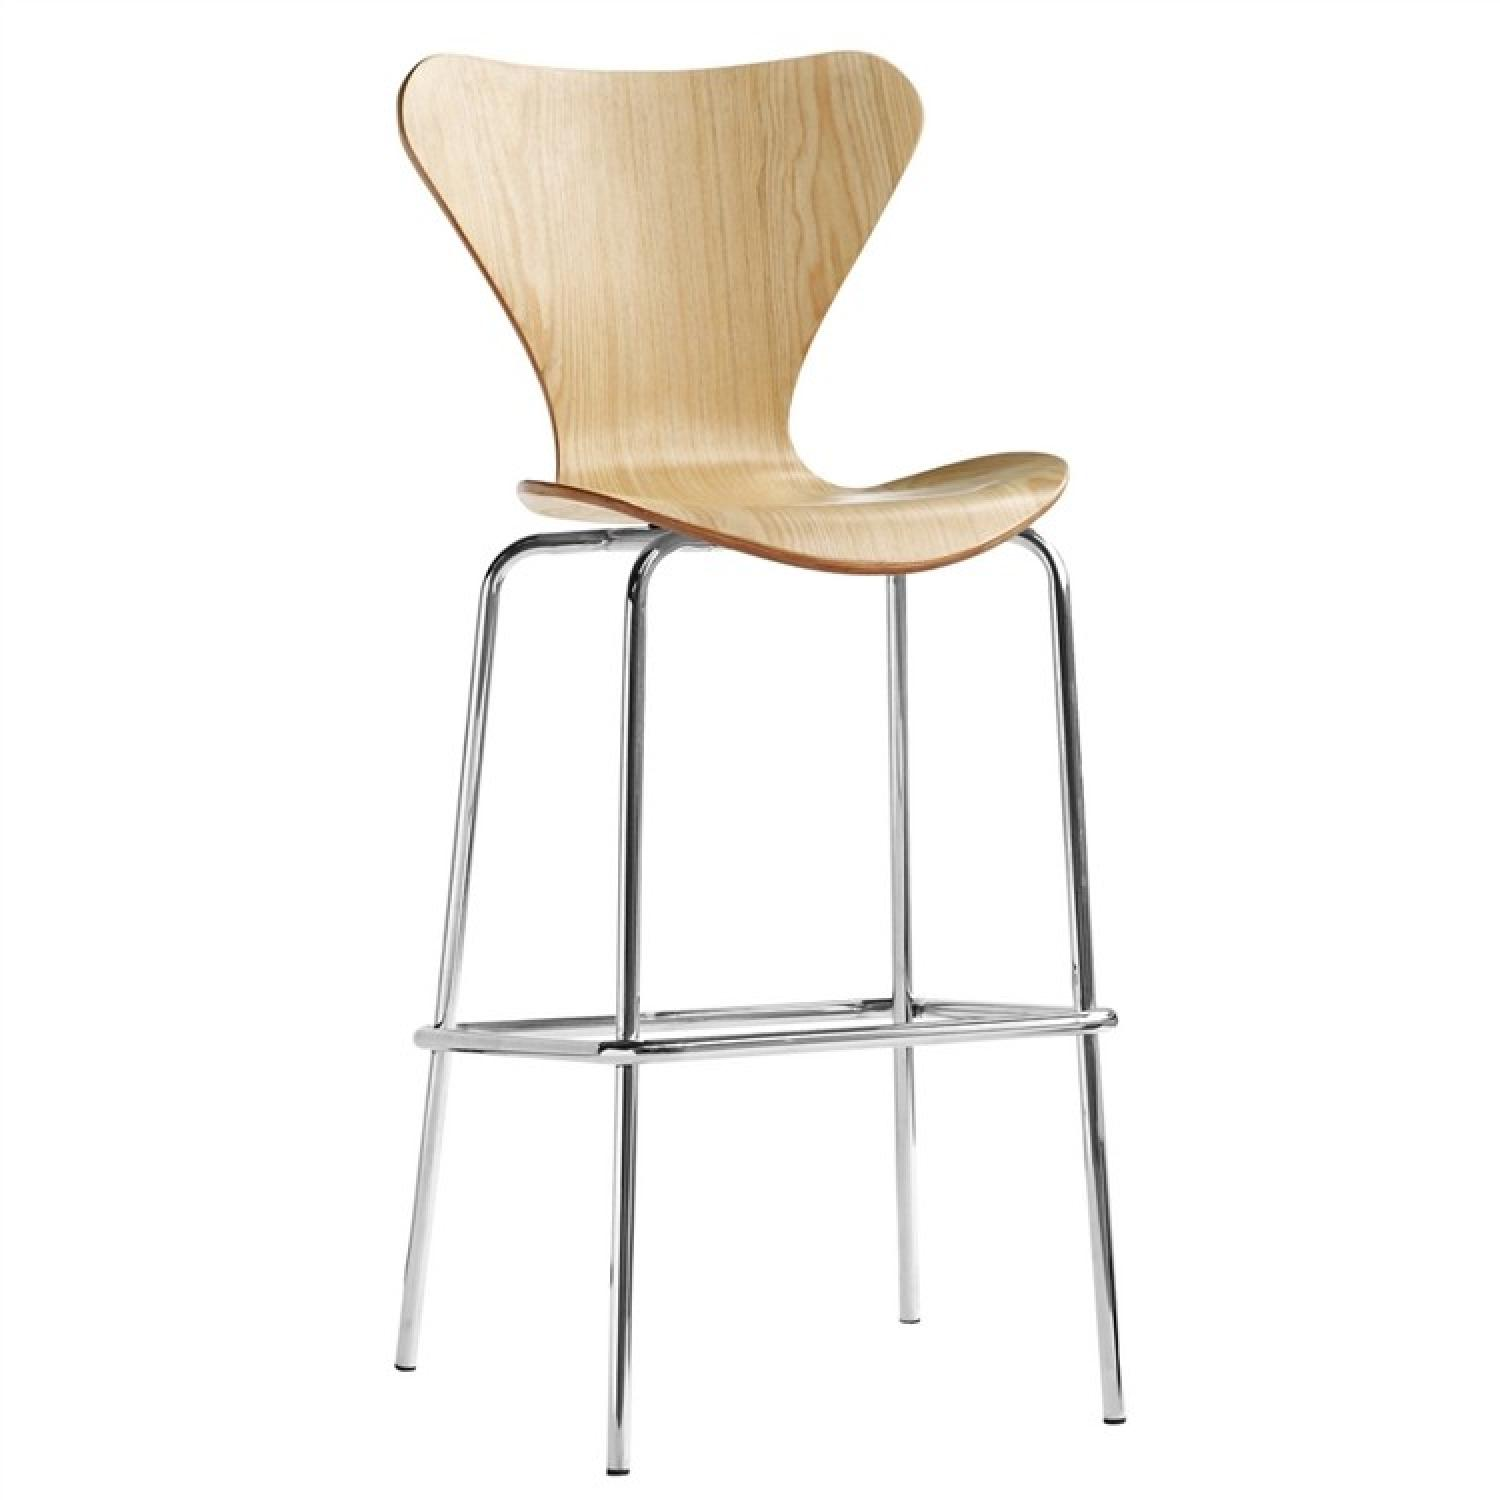 Modern Plywood Bar Stool in Natural Finish w/ Metal Legs